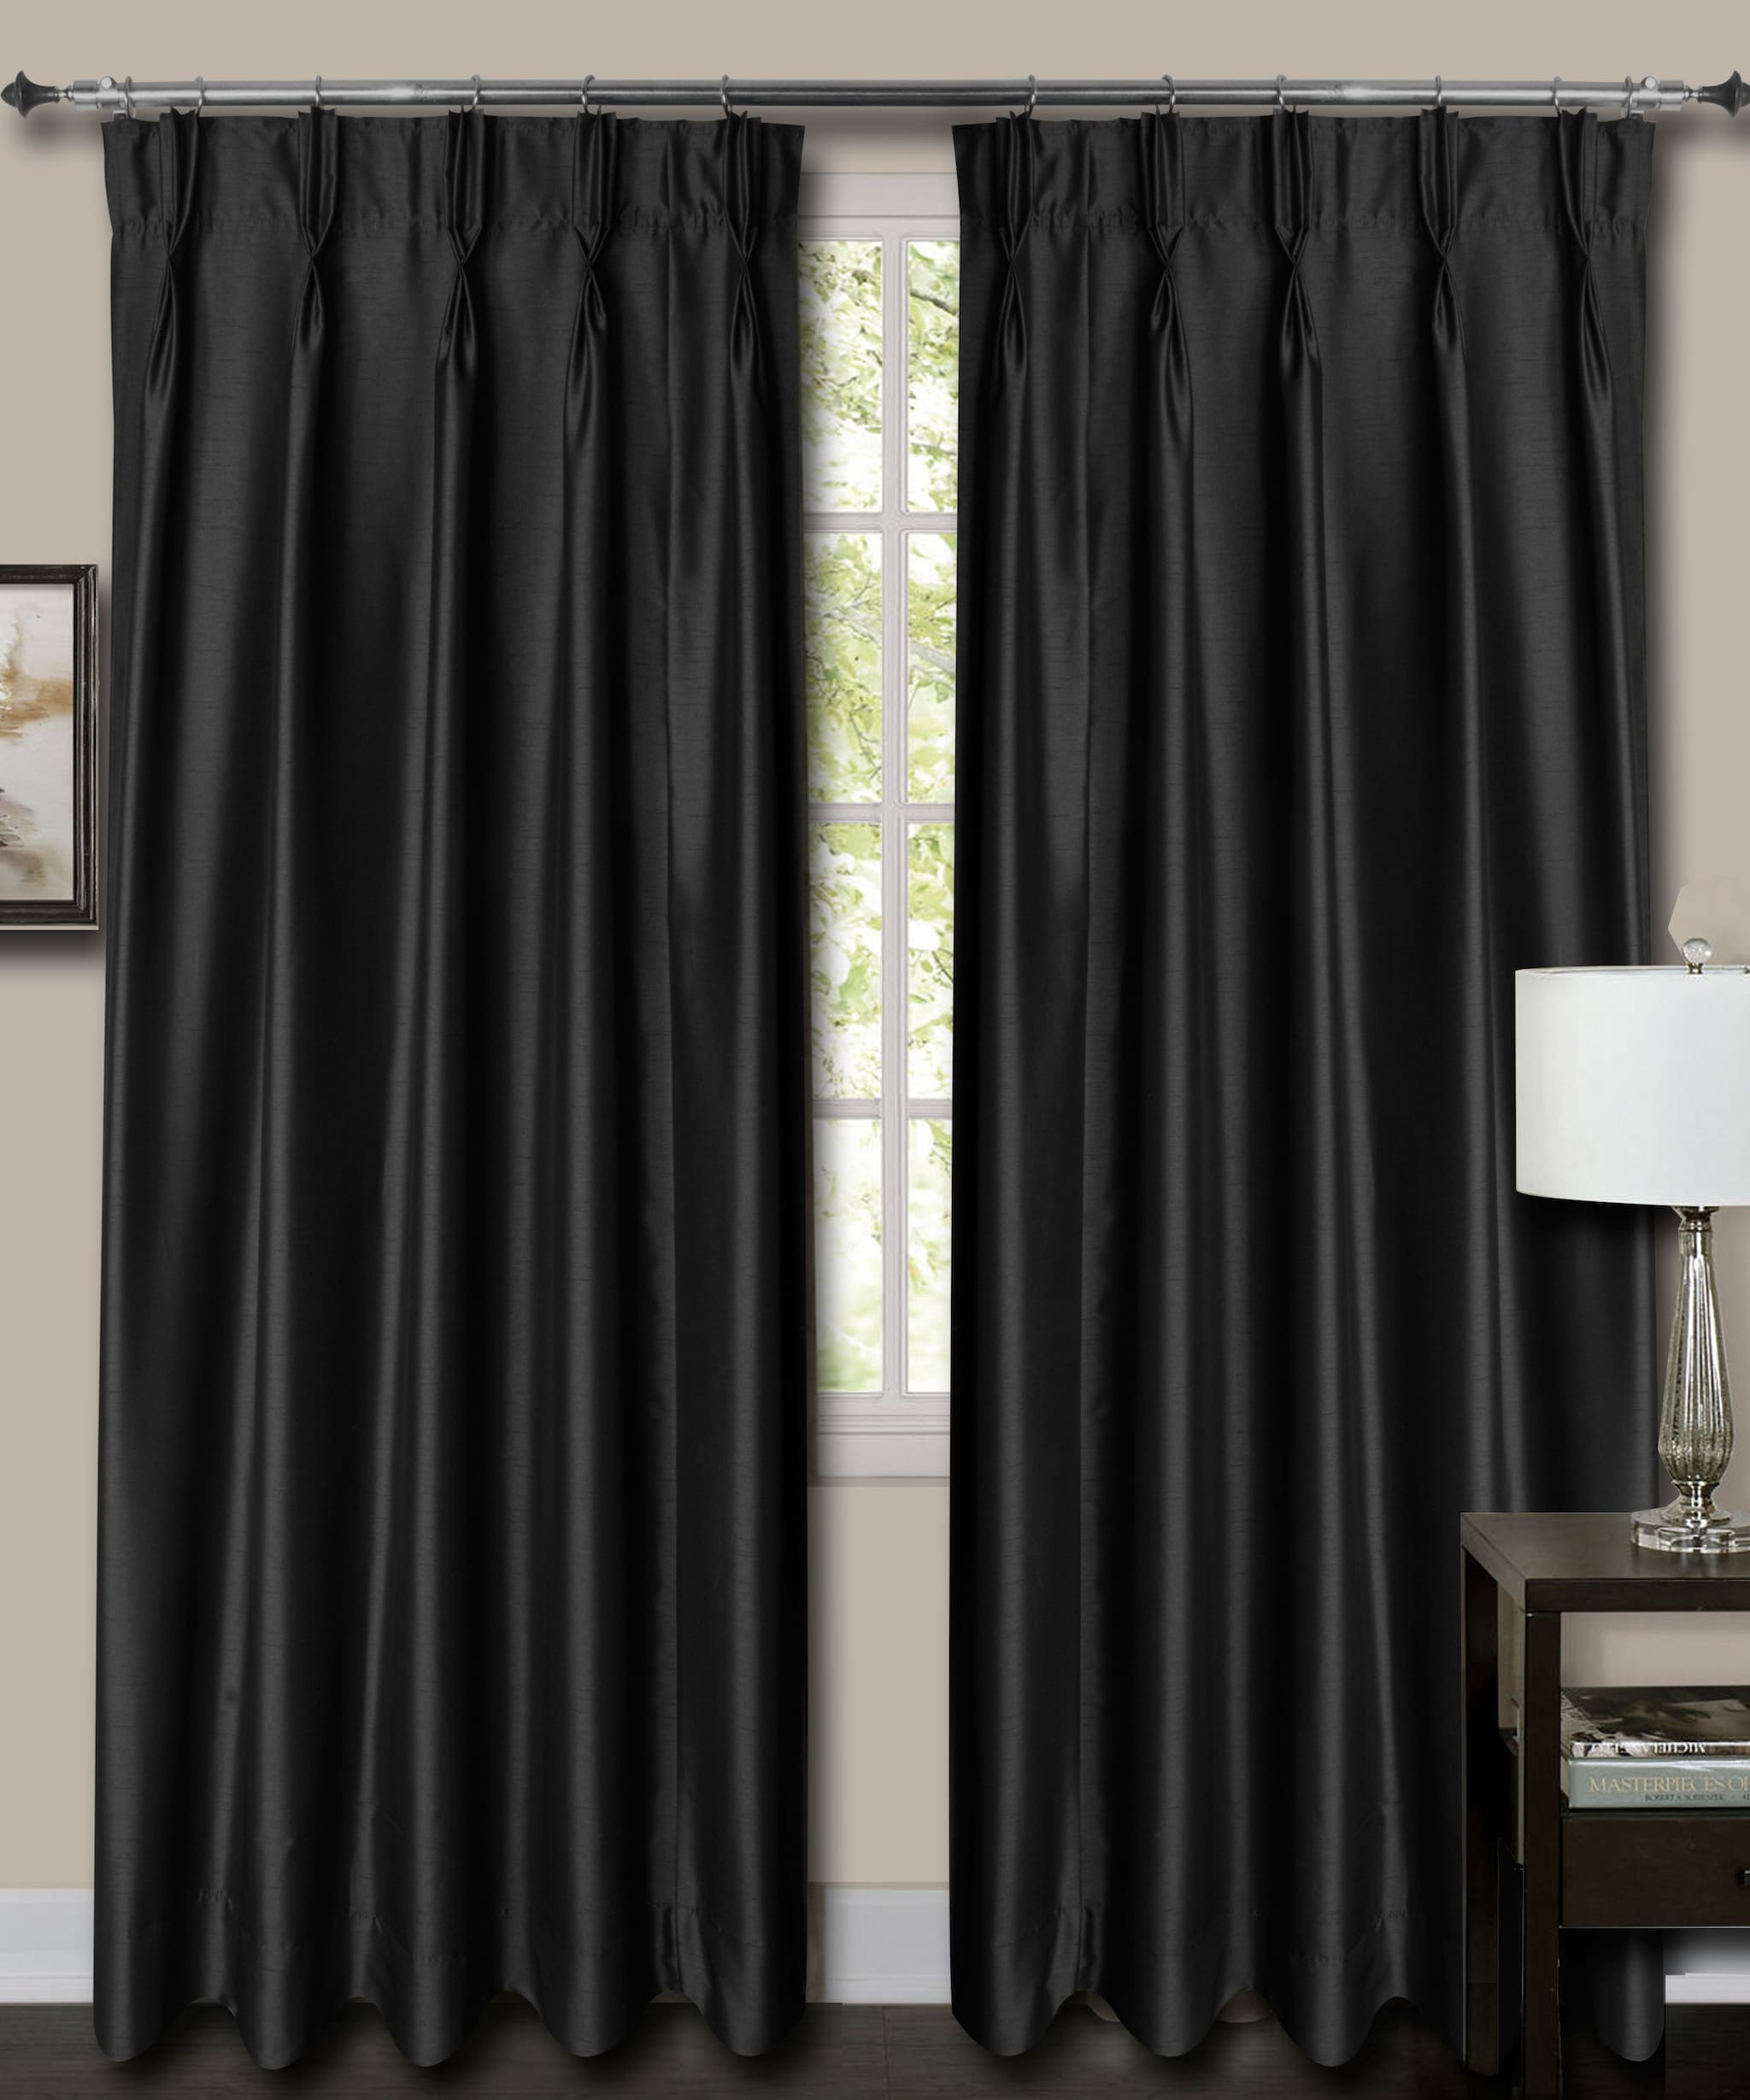 "French Pleat Top Black Faux Silk Dupioni Curtains. (65"" Wide,11 Feet Long,Blackout Lining)"